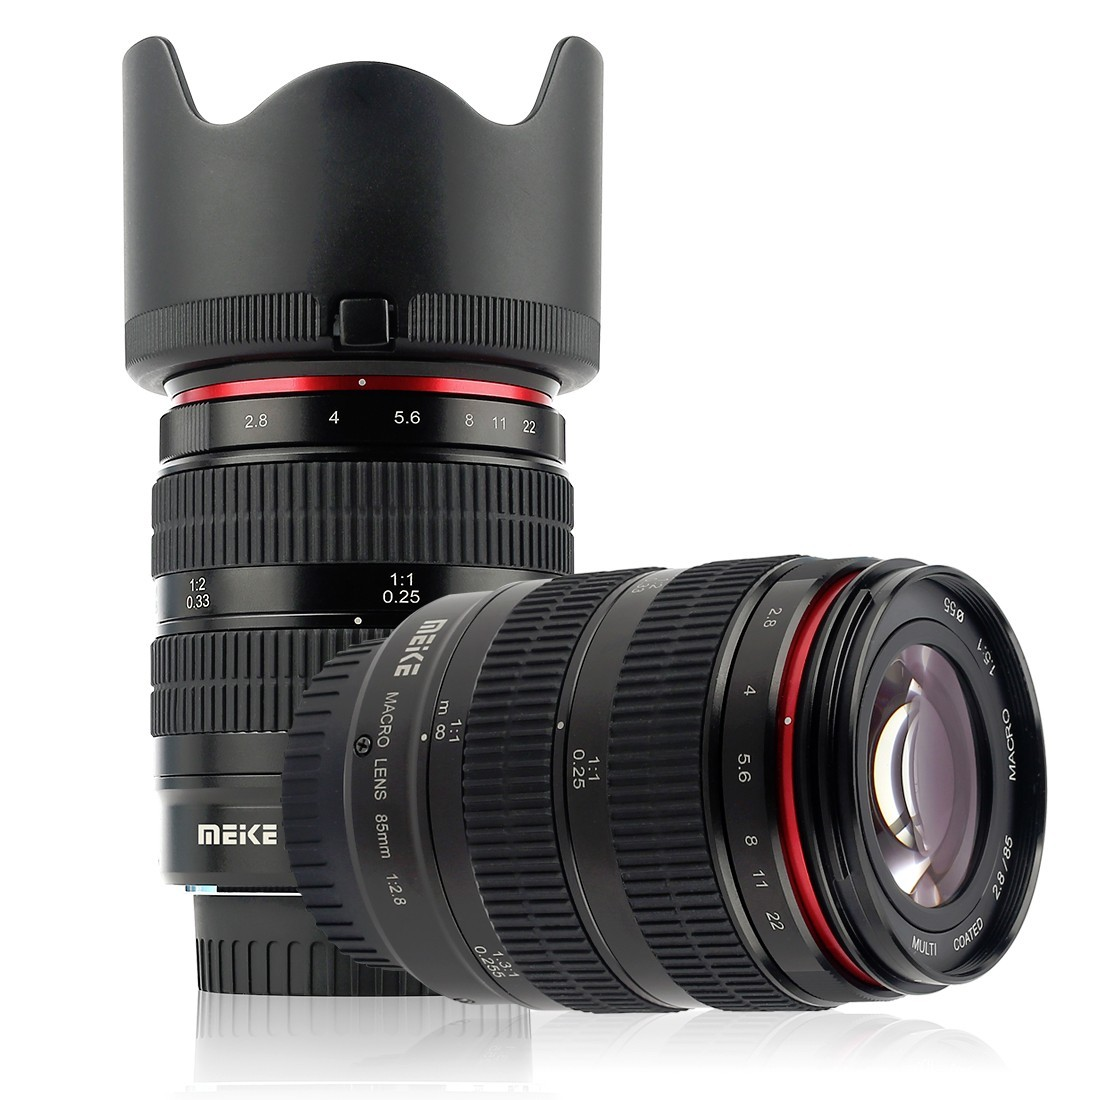 Meike 85mm F 2 8 Manual Focus Aspherical Medium Telephoto Full Frame Prime Macro Lens for